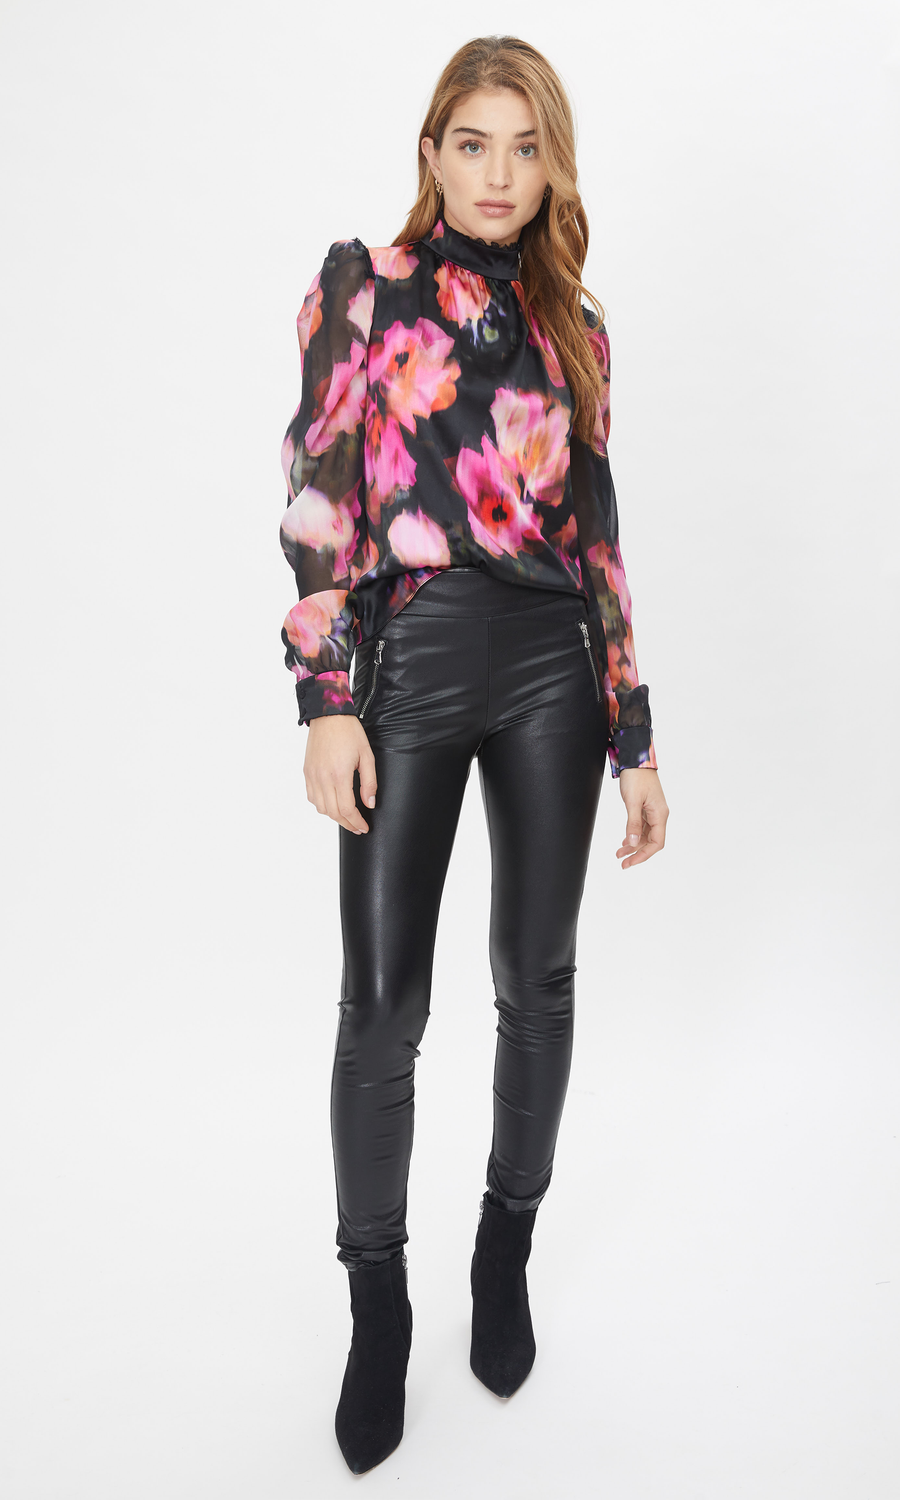 Estella Blurry Floral Blouse